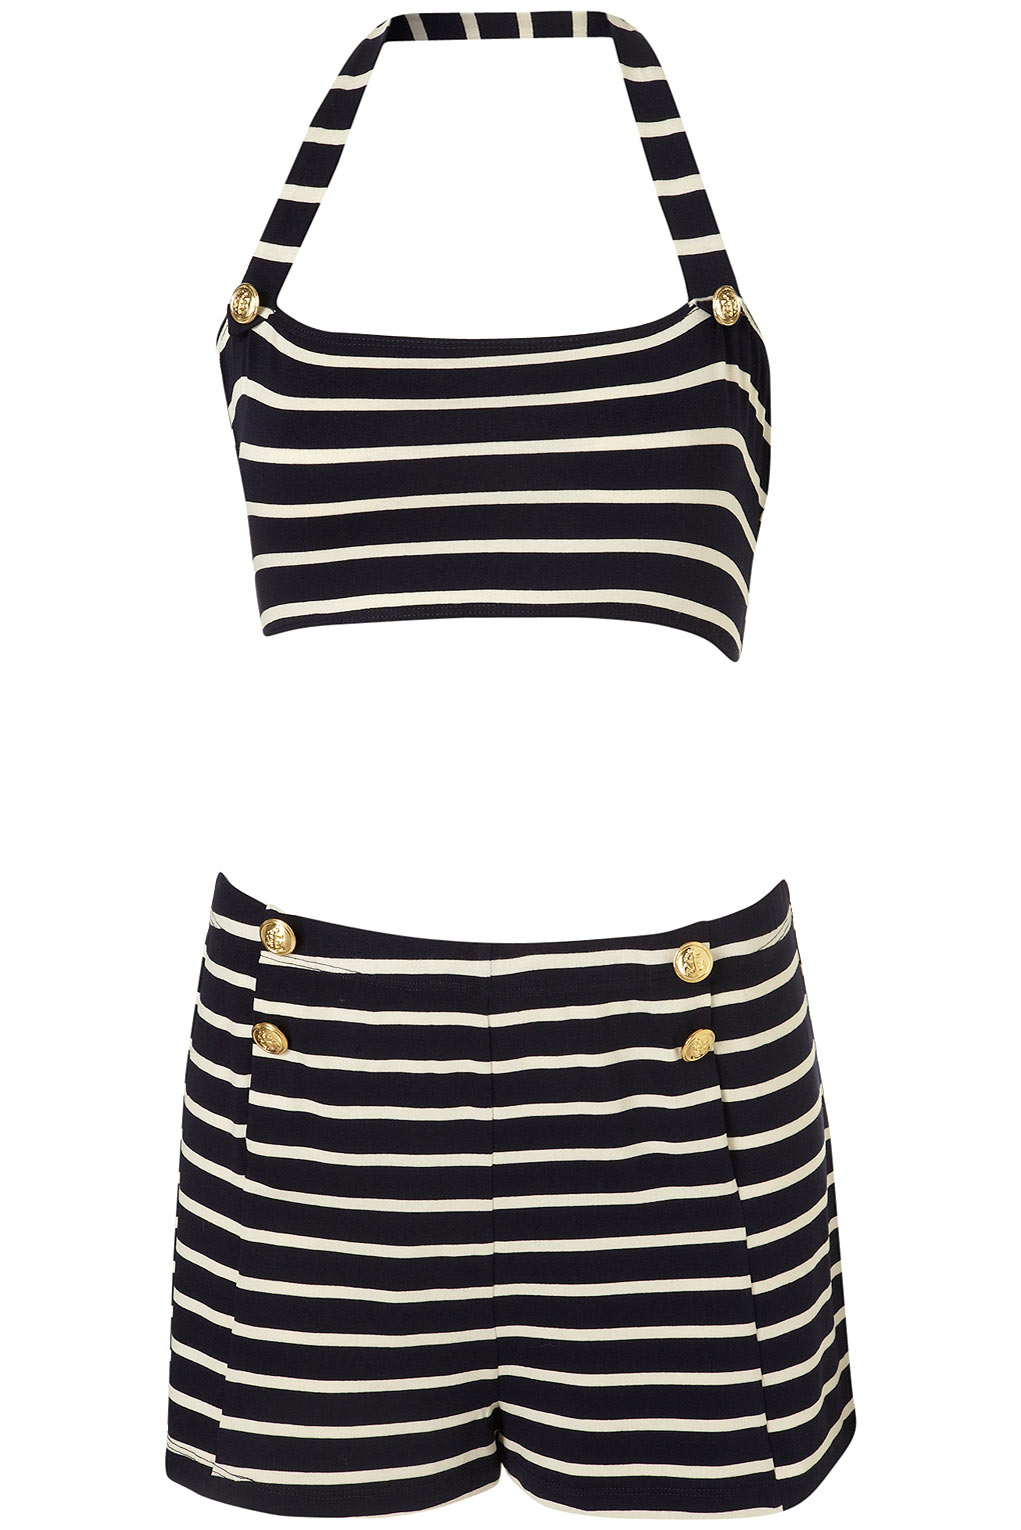 Retro Style Bathing Suits Part - 47: NAVY ...